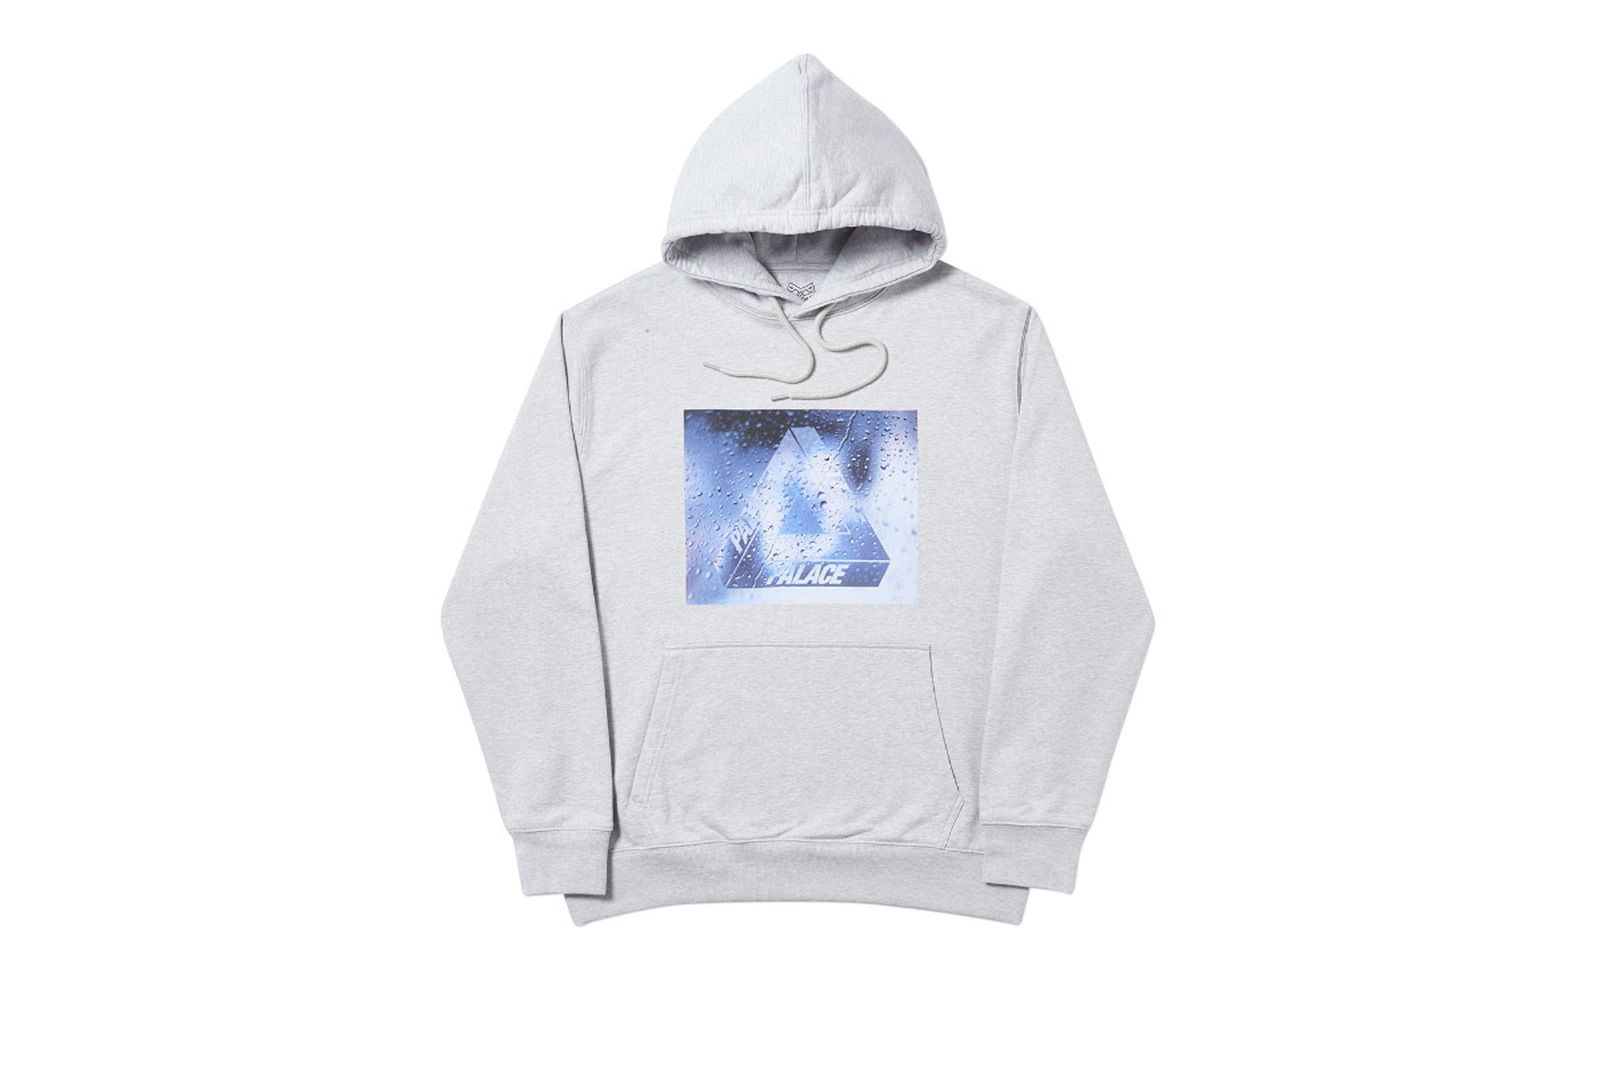 Palace 2019 Autumn Hoodie Window Licker grey marl front 14666 ADJUSTED